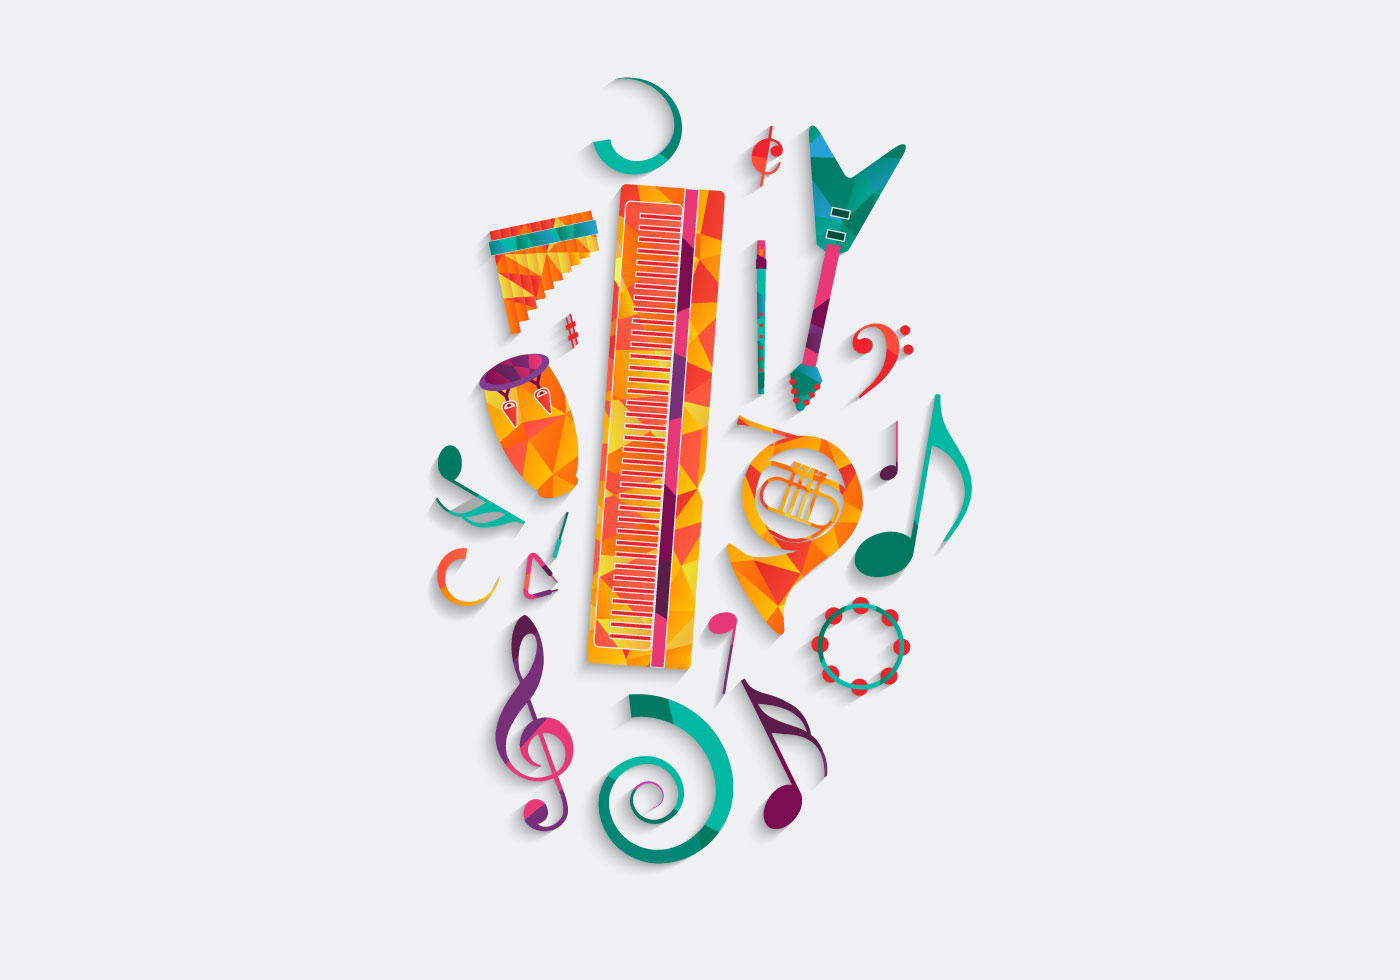 Free Music Background Clipart Download Free Clip Art: Free Music Background Vector